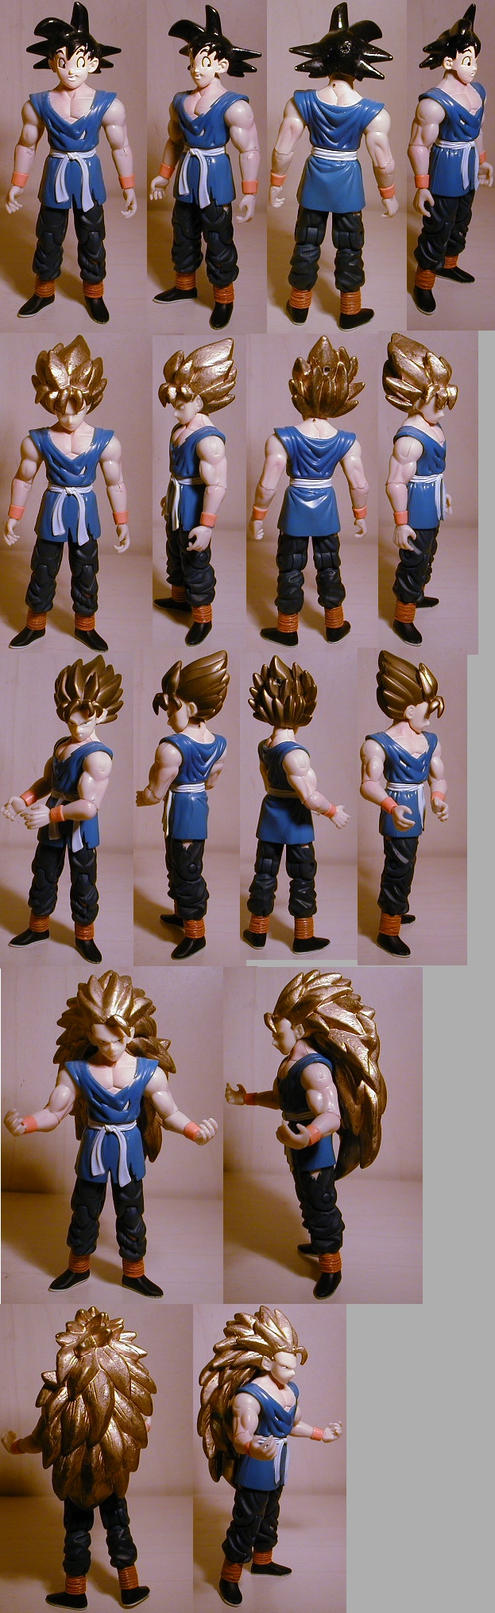 Dragonball End of Z Goku cstm by pgv